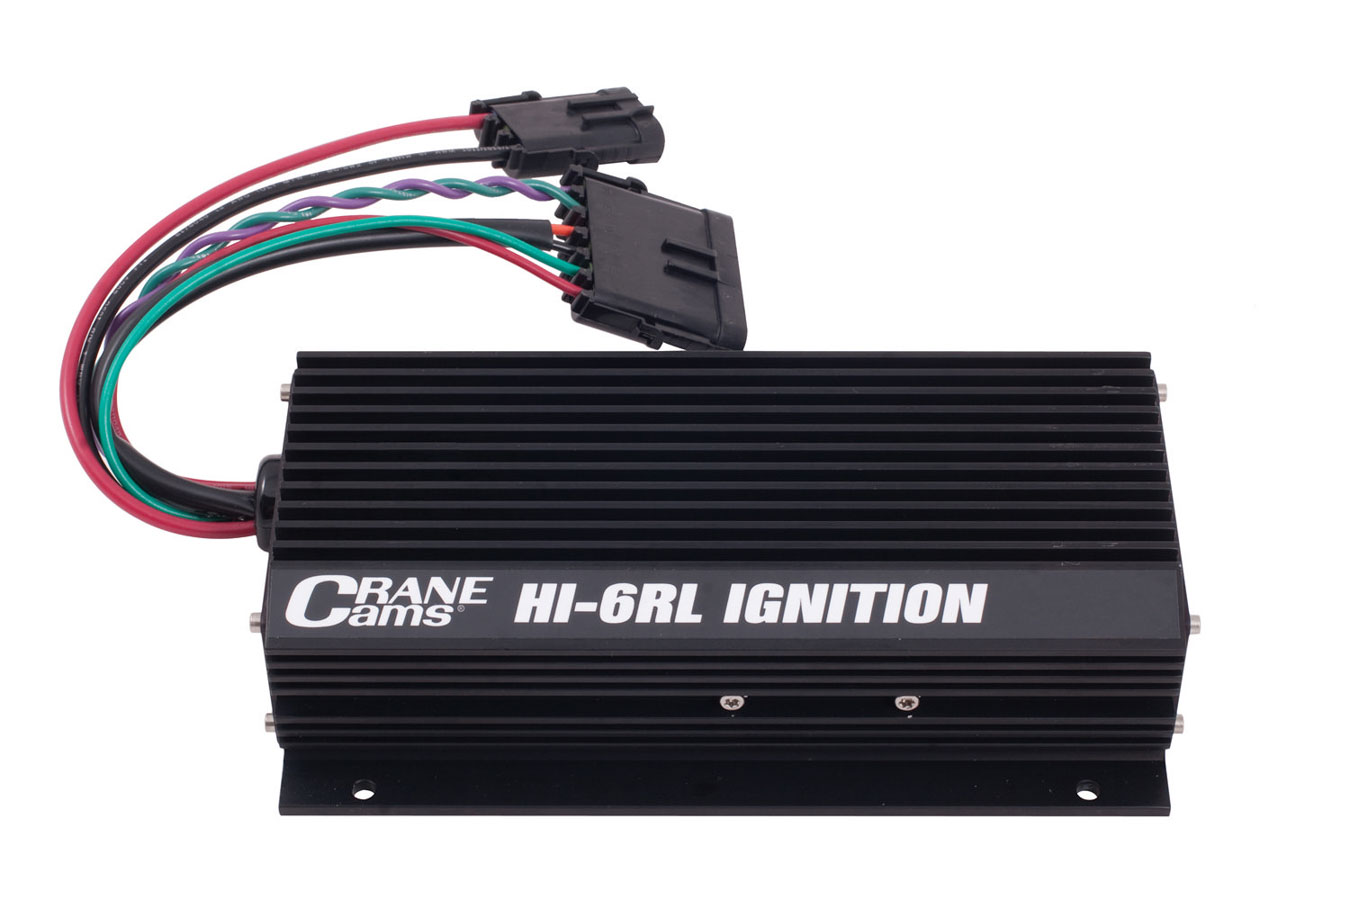 hight resolution of hi 6rl cd ignition box superseded 03 28 16 vd discontinued